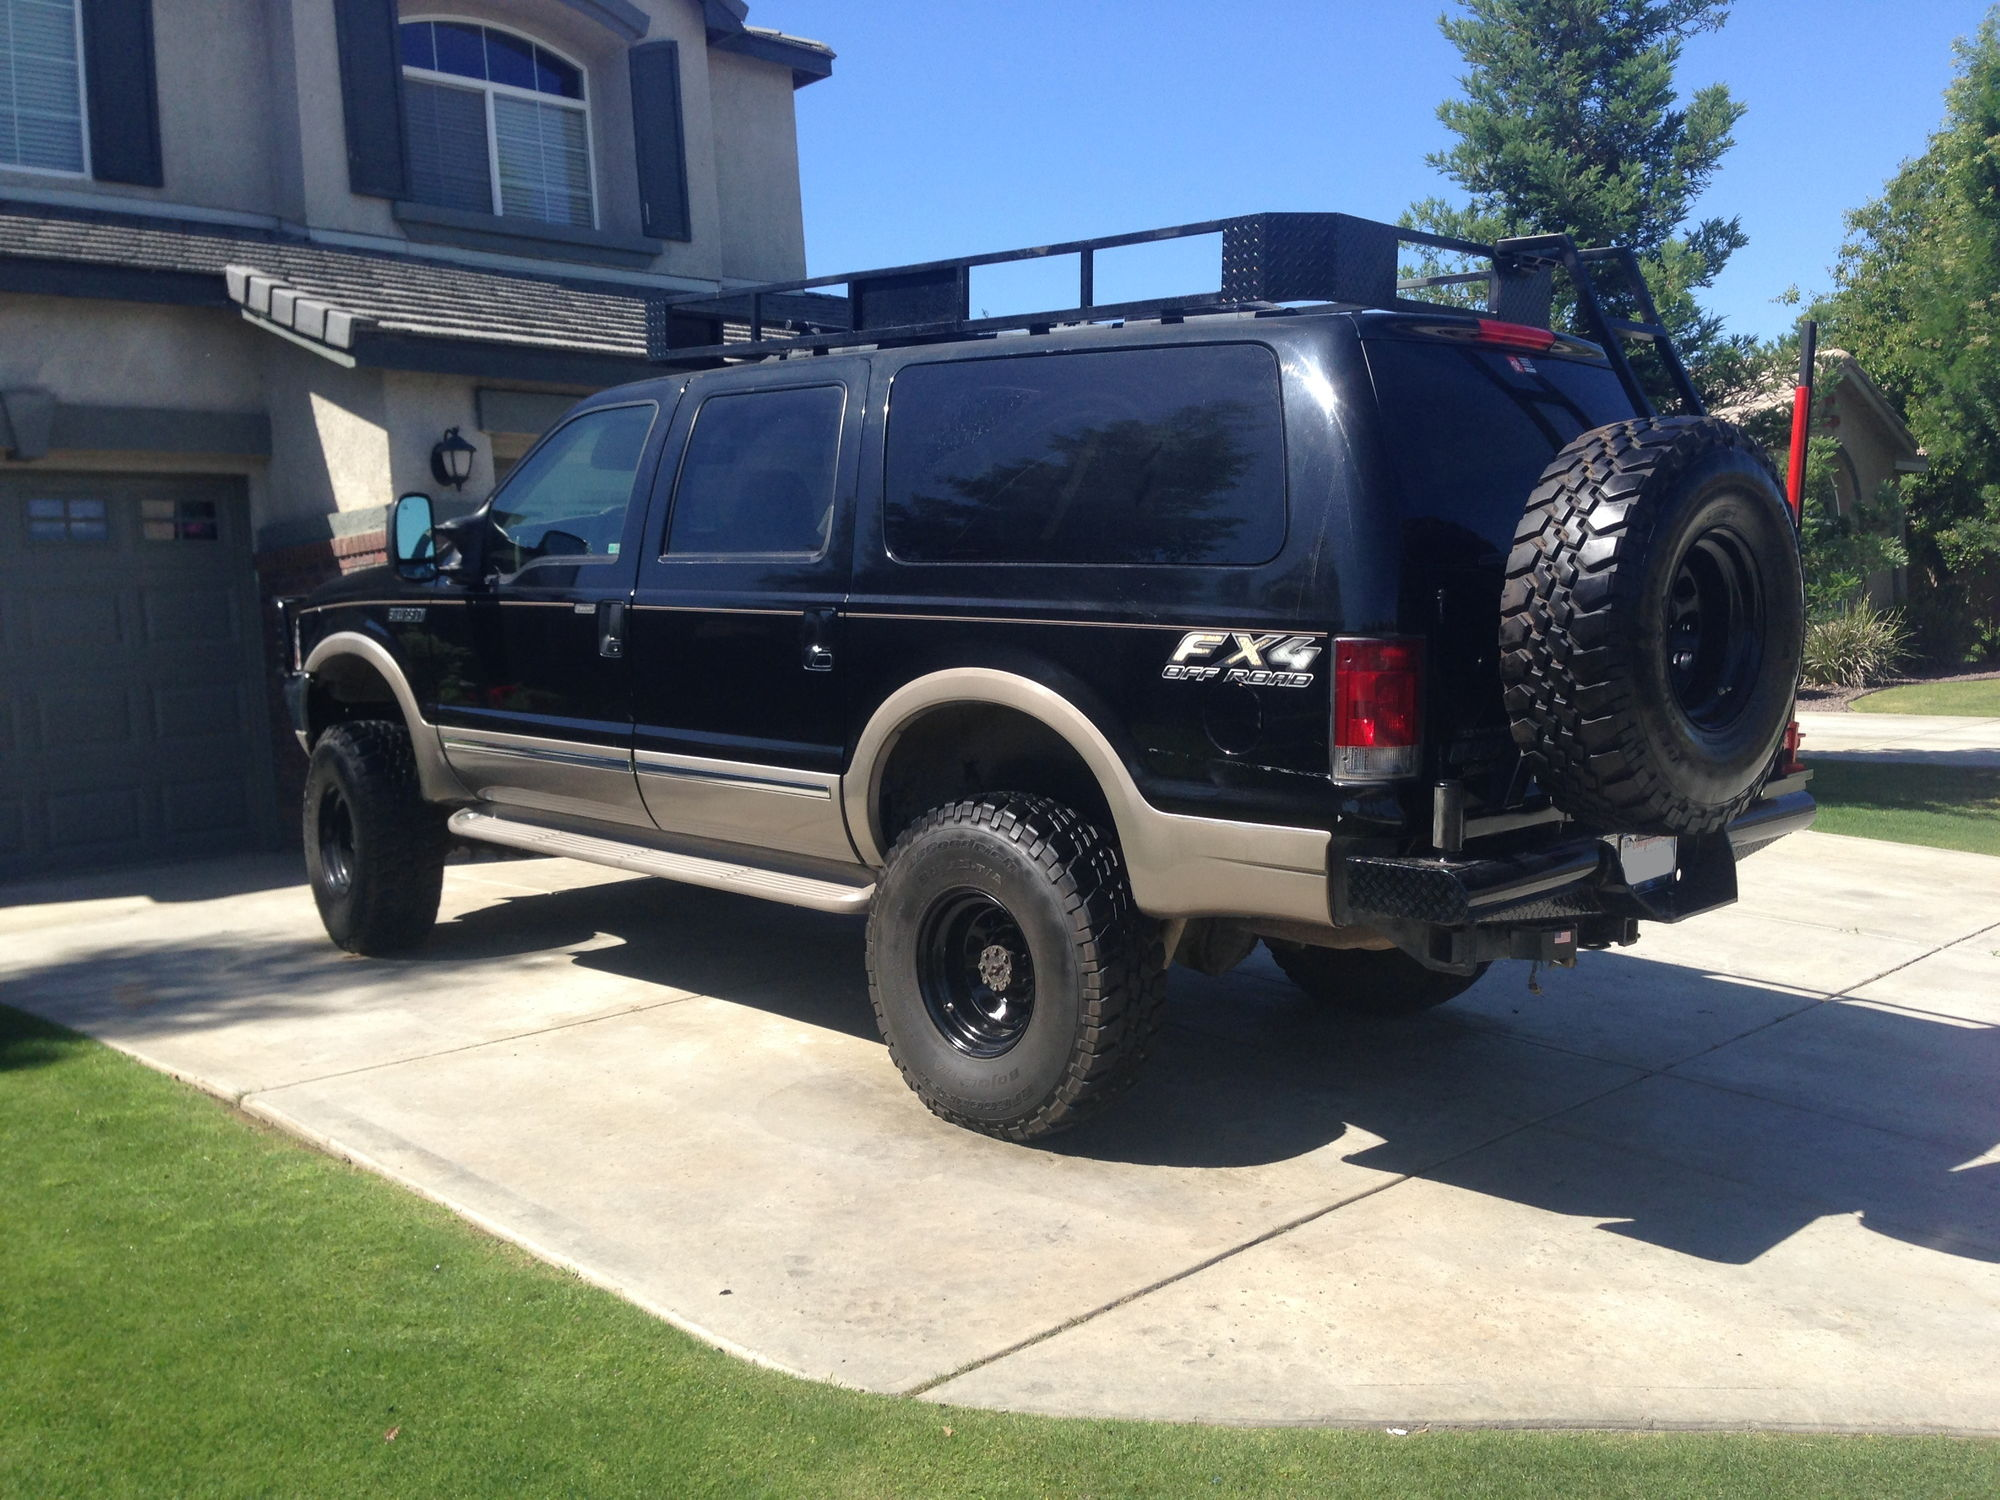 2015 Ford Excursion >> gorkah's overland excursion build out - some roof rack details - Ford Truck Enthusiasts Forums